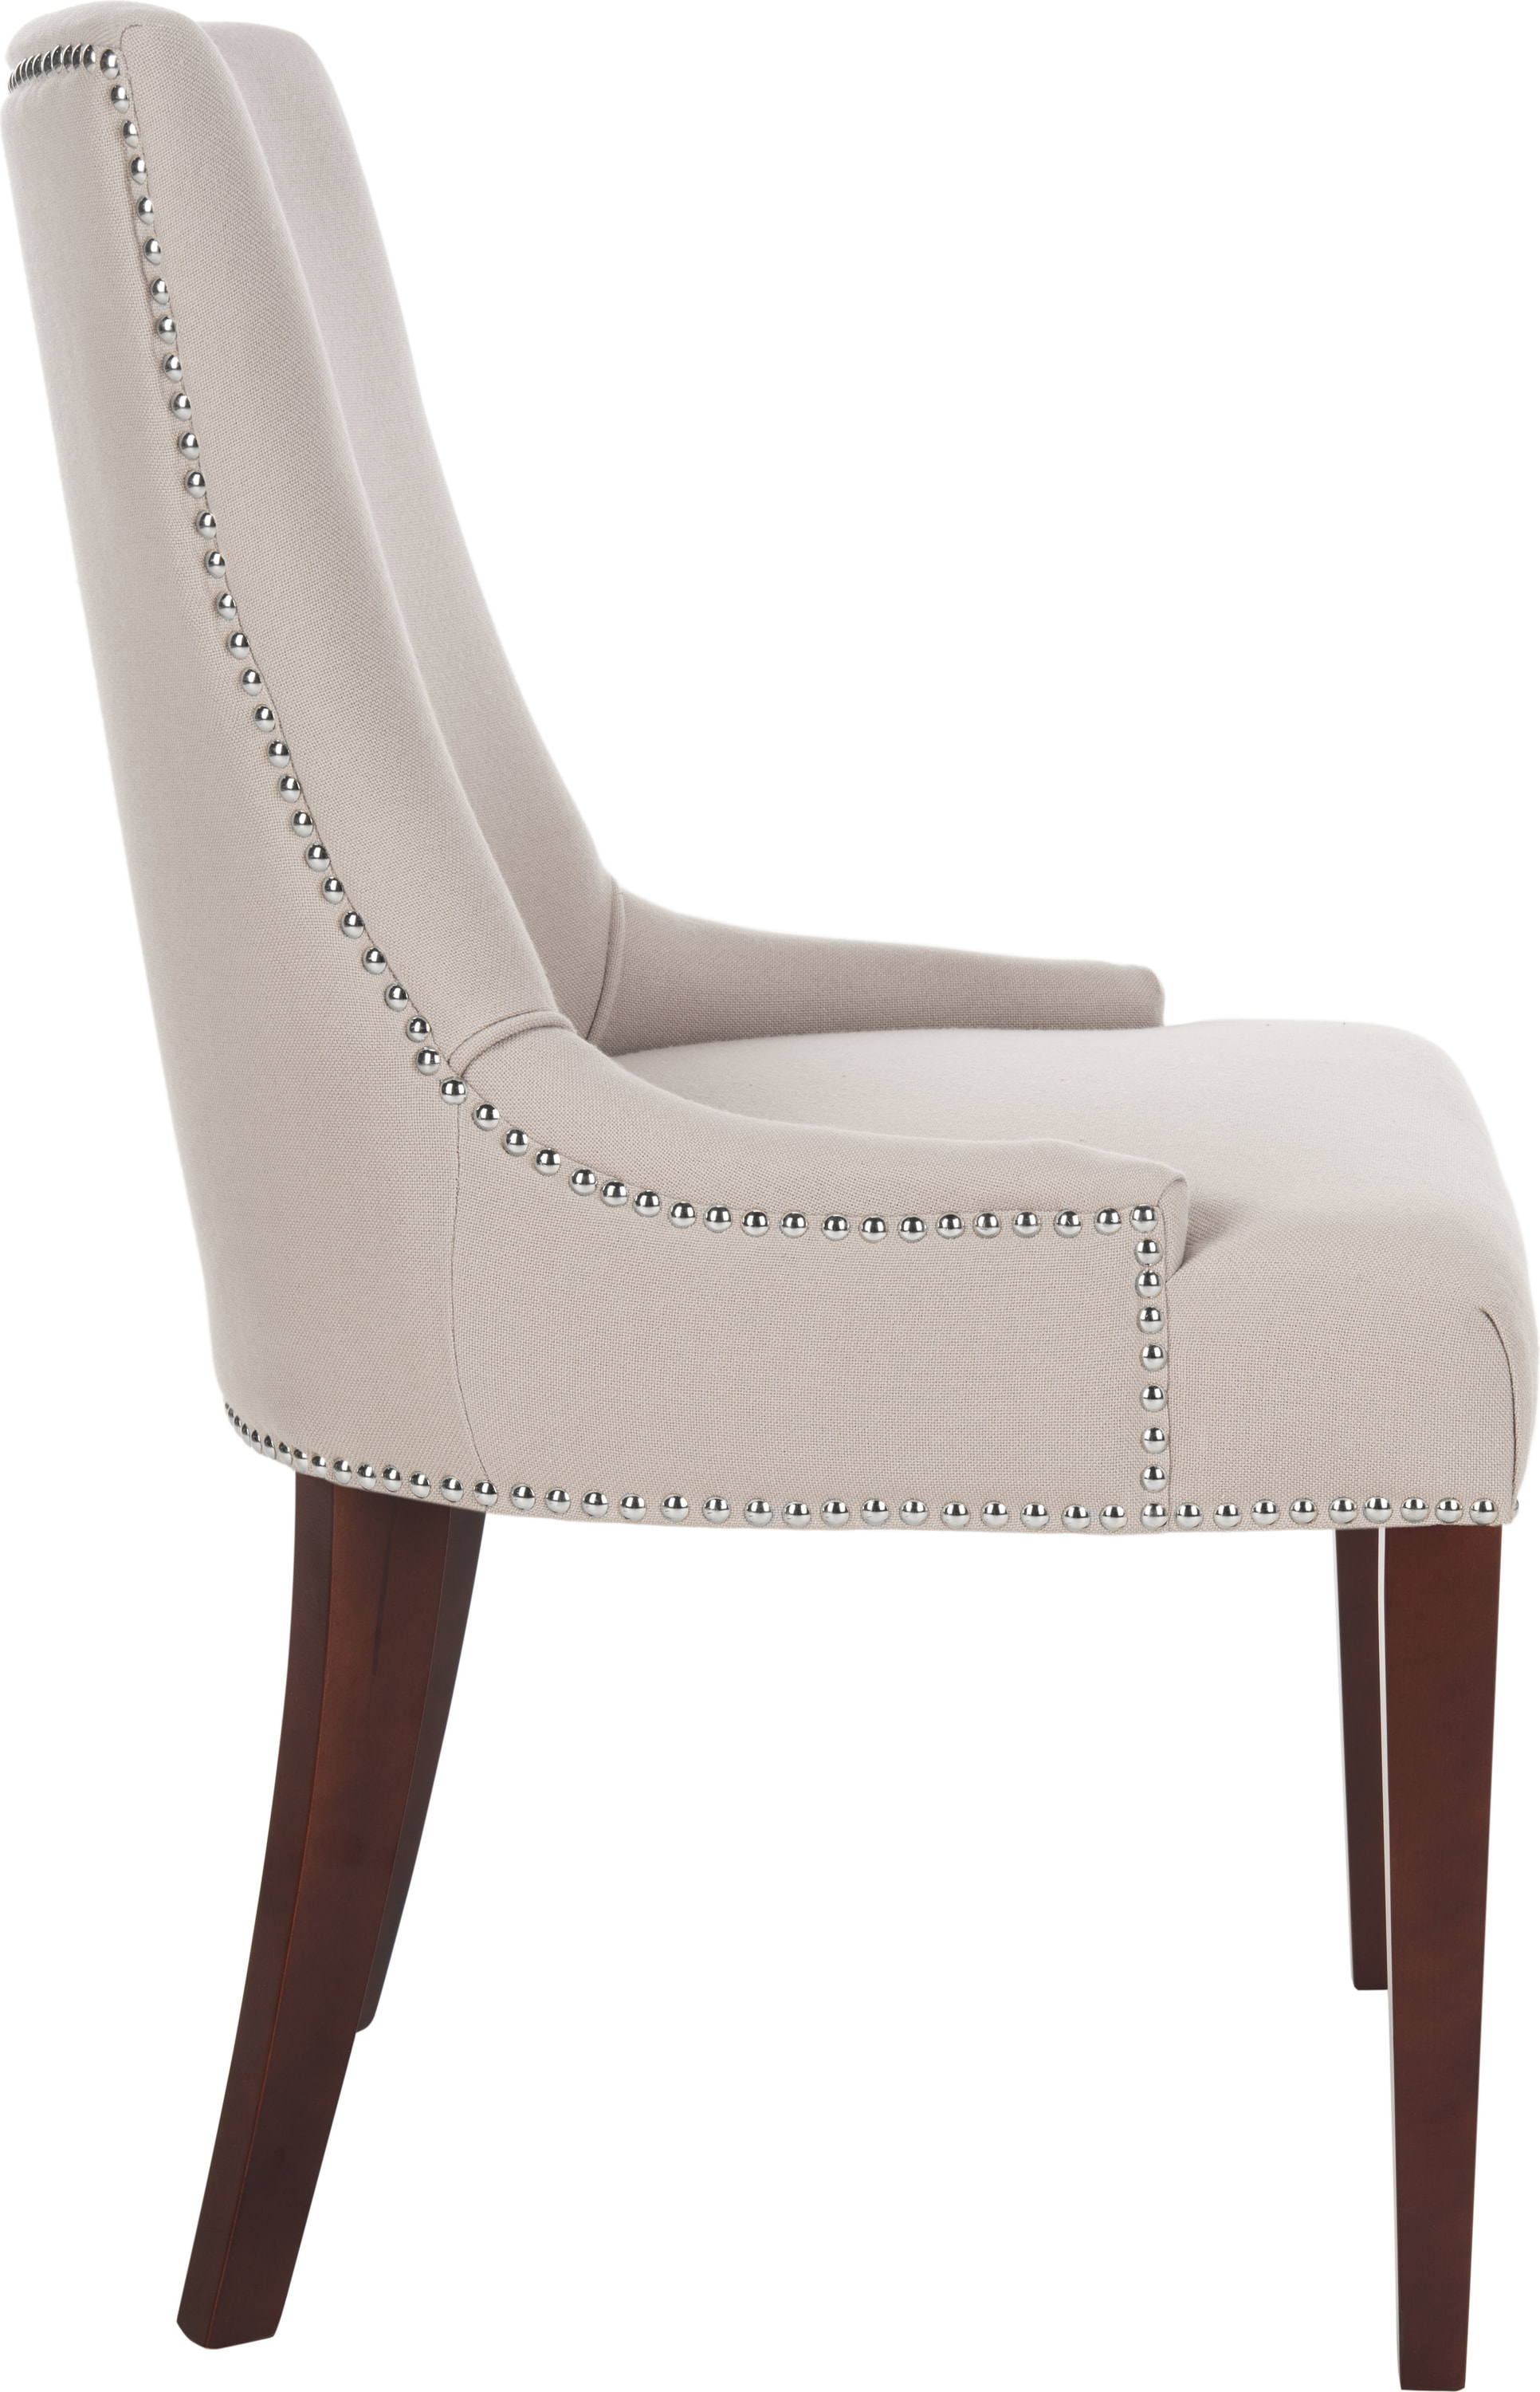 Becca Chair Hedgeapple